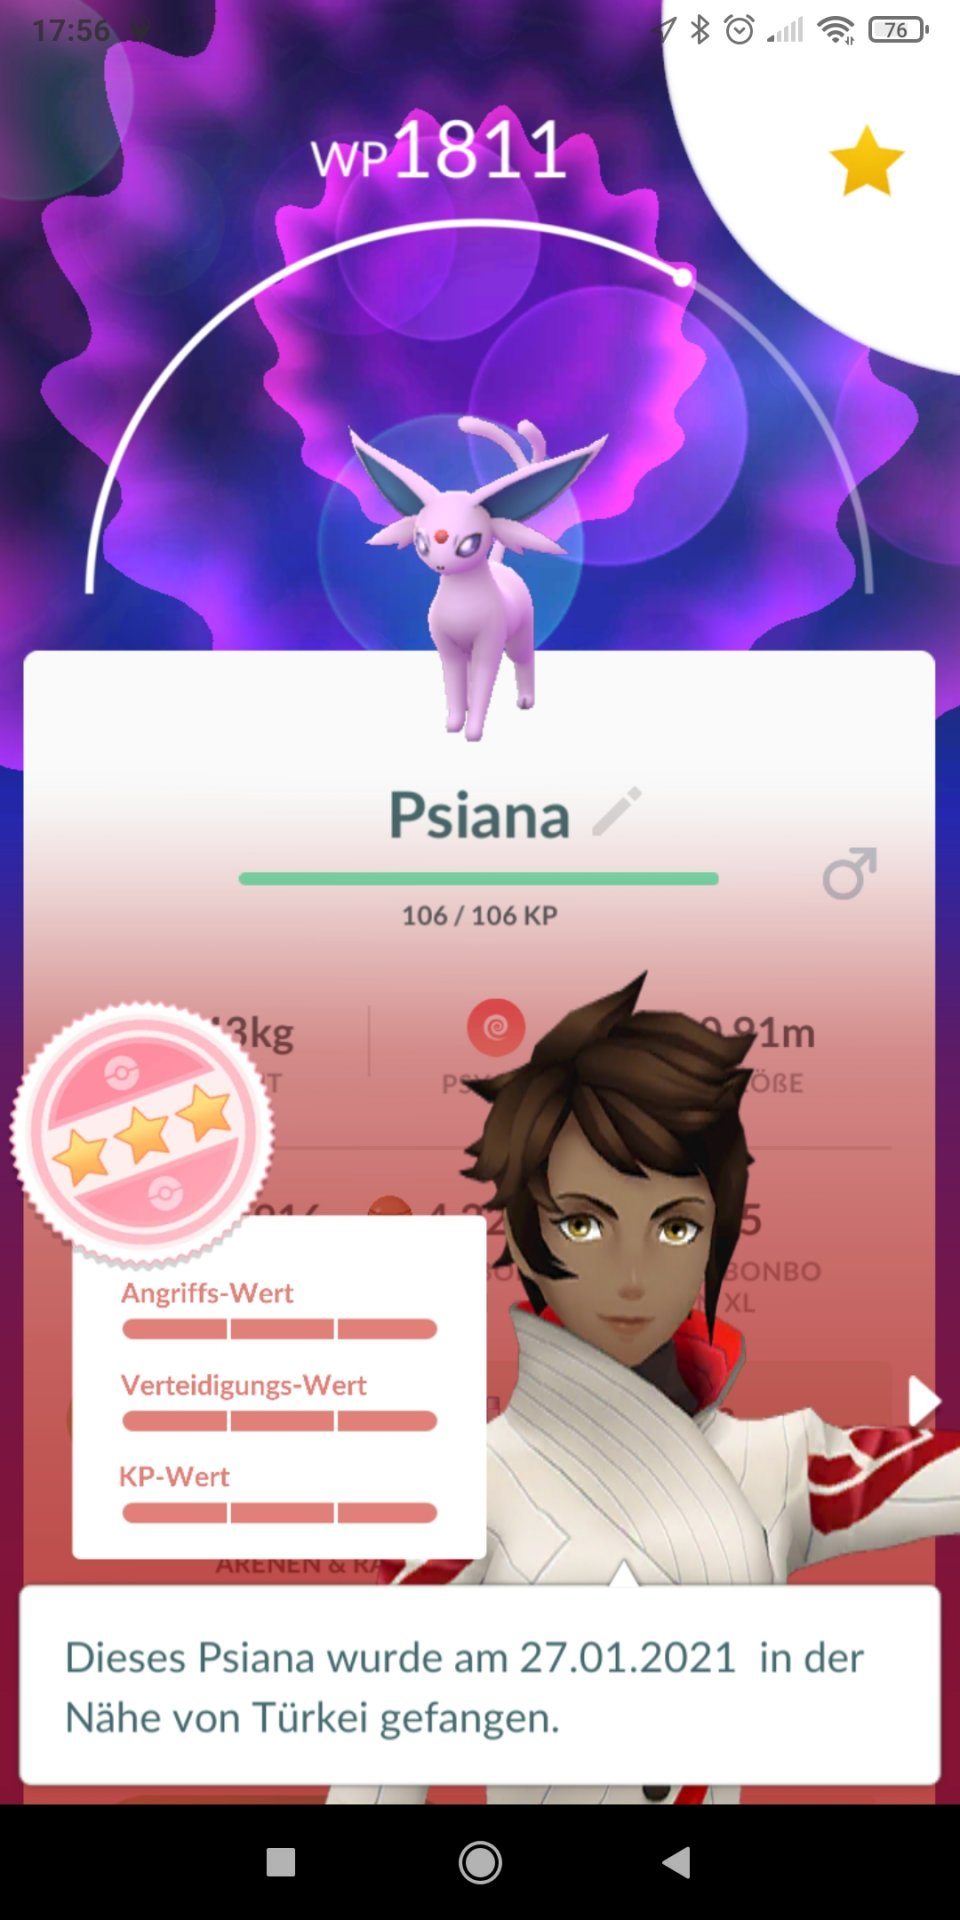 Screenshot_2021-01-27-17-56-39-696_com.nianticlabs.pokemongo.jpg